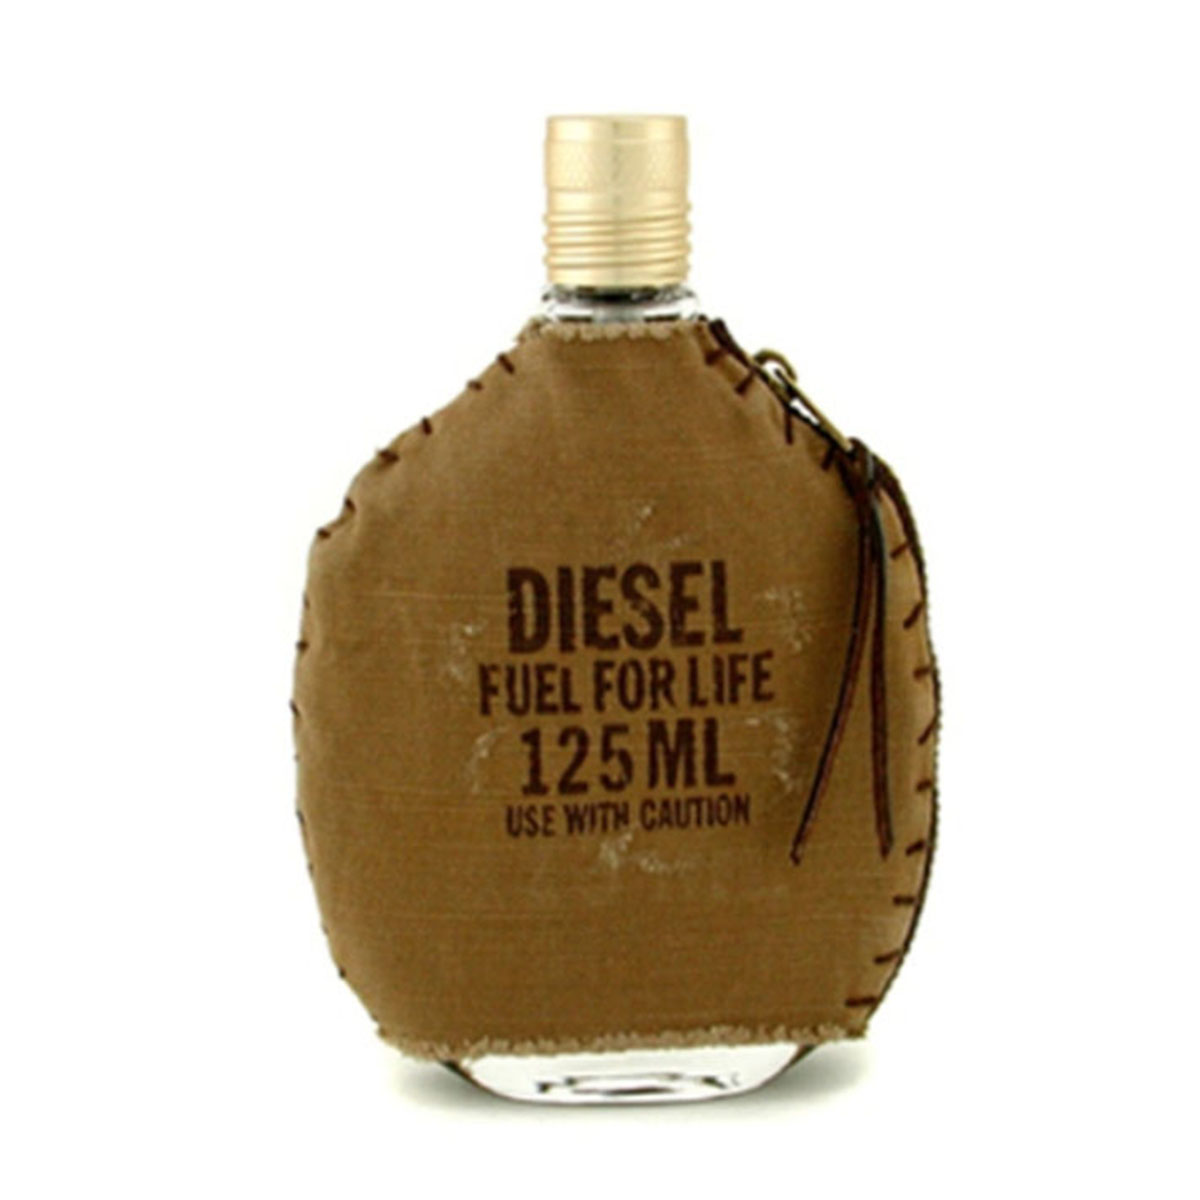 Diesel fuel for life homme eau de toilette 125ml vaporizador